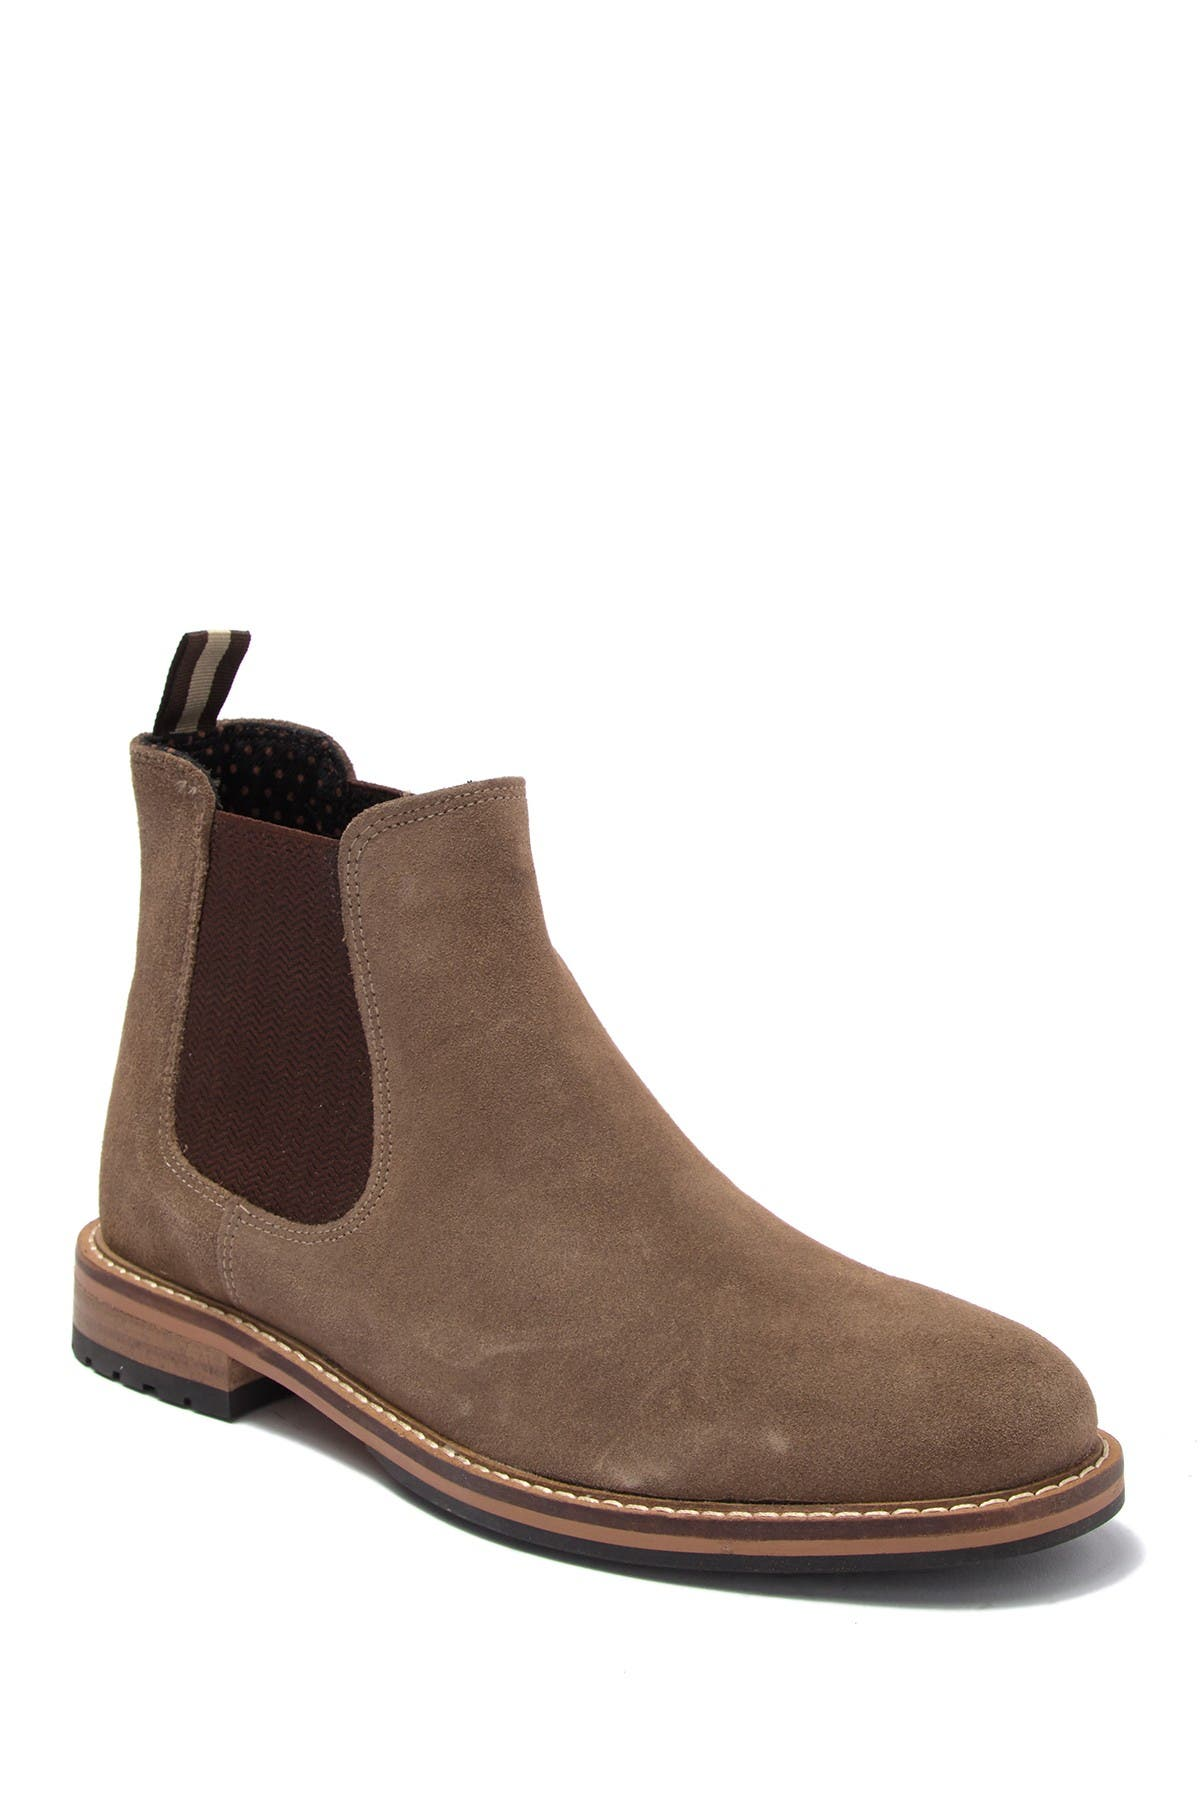 Image of Crevo Rory Water Resistant Suede Chelsea Boot